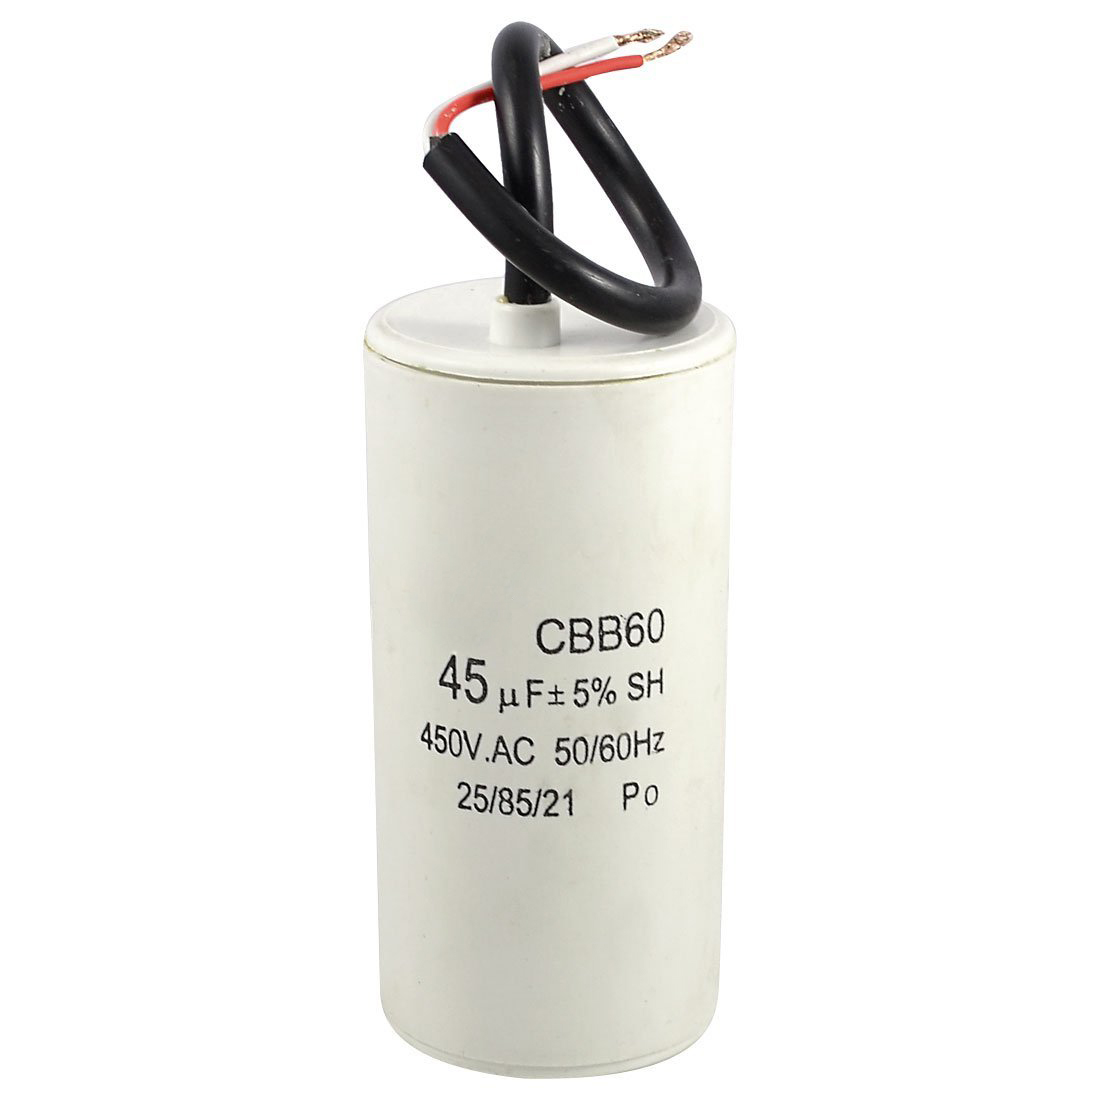 White Plastic Shell 45uf 50 60hz 450vac Cbb60 Motor Start Capacitor How Does A Work Features 2 Wire Cord Polypropylene Film It Is Non Polar Widely Used In Washing Machine For Better Starting And Working